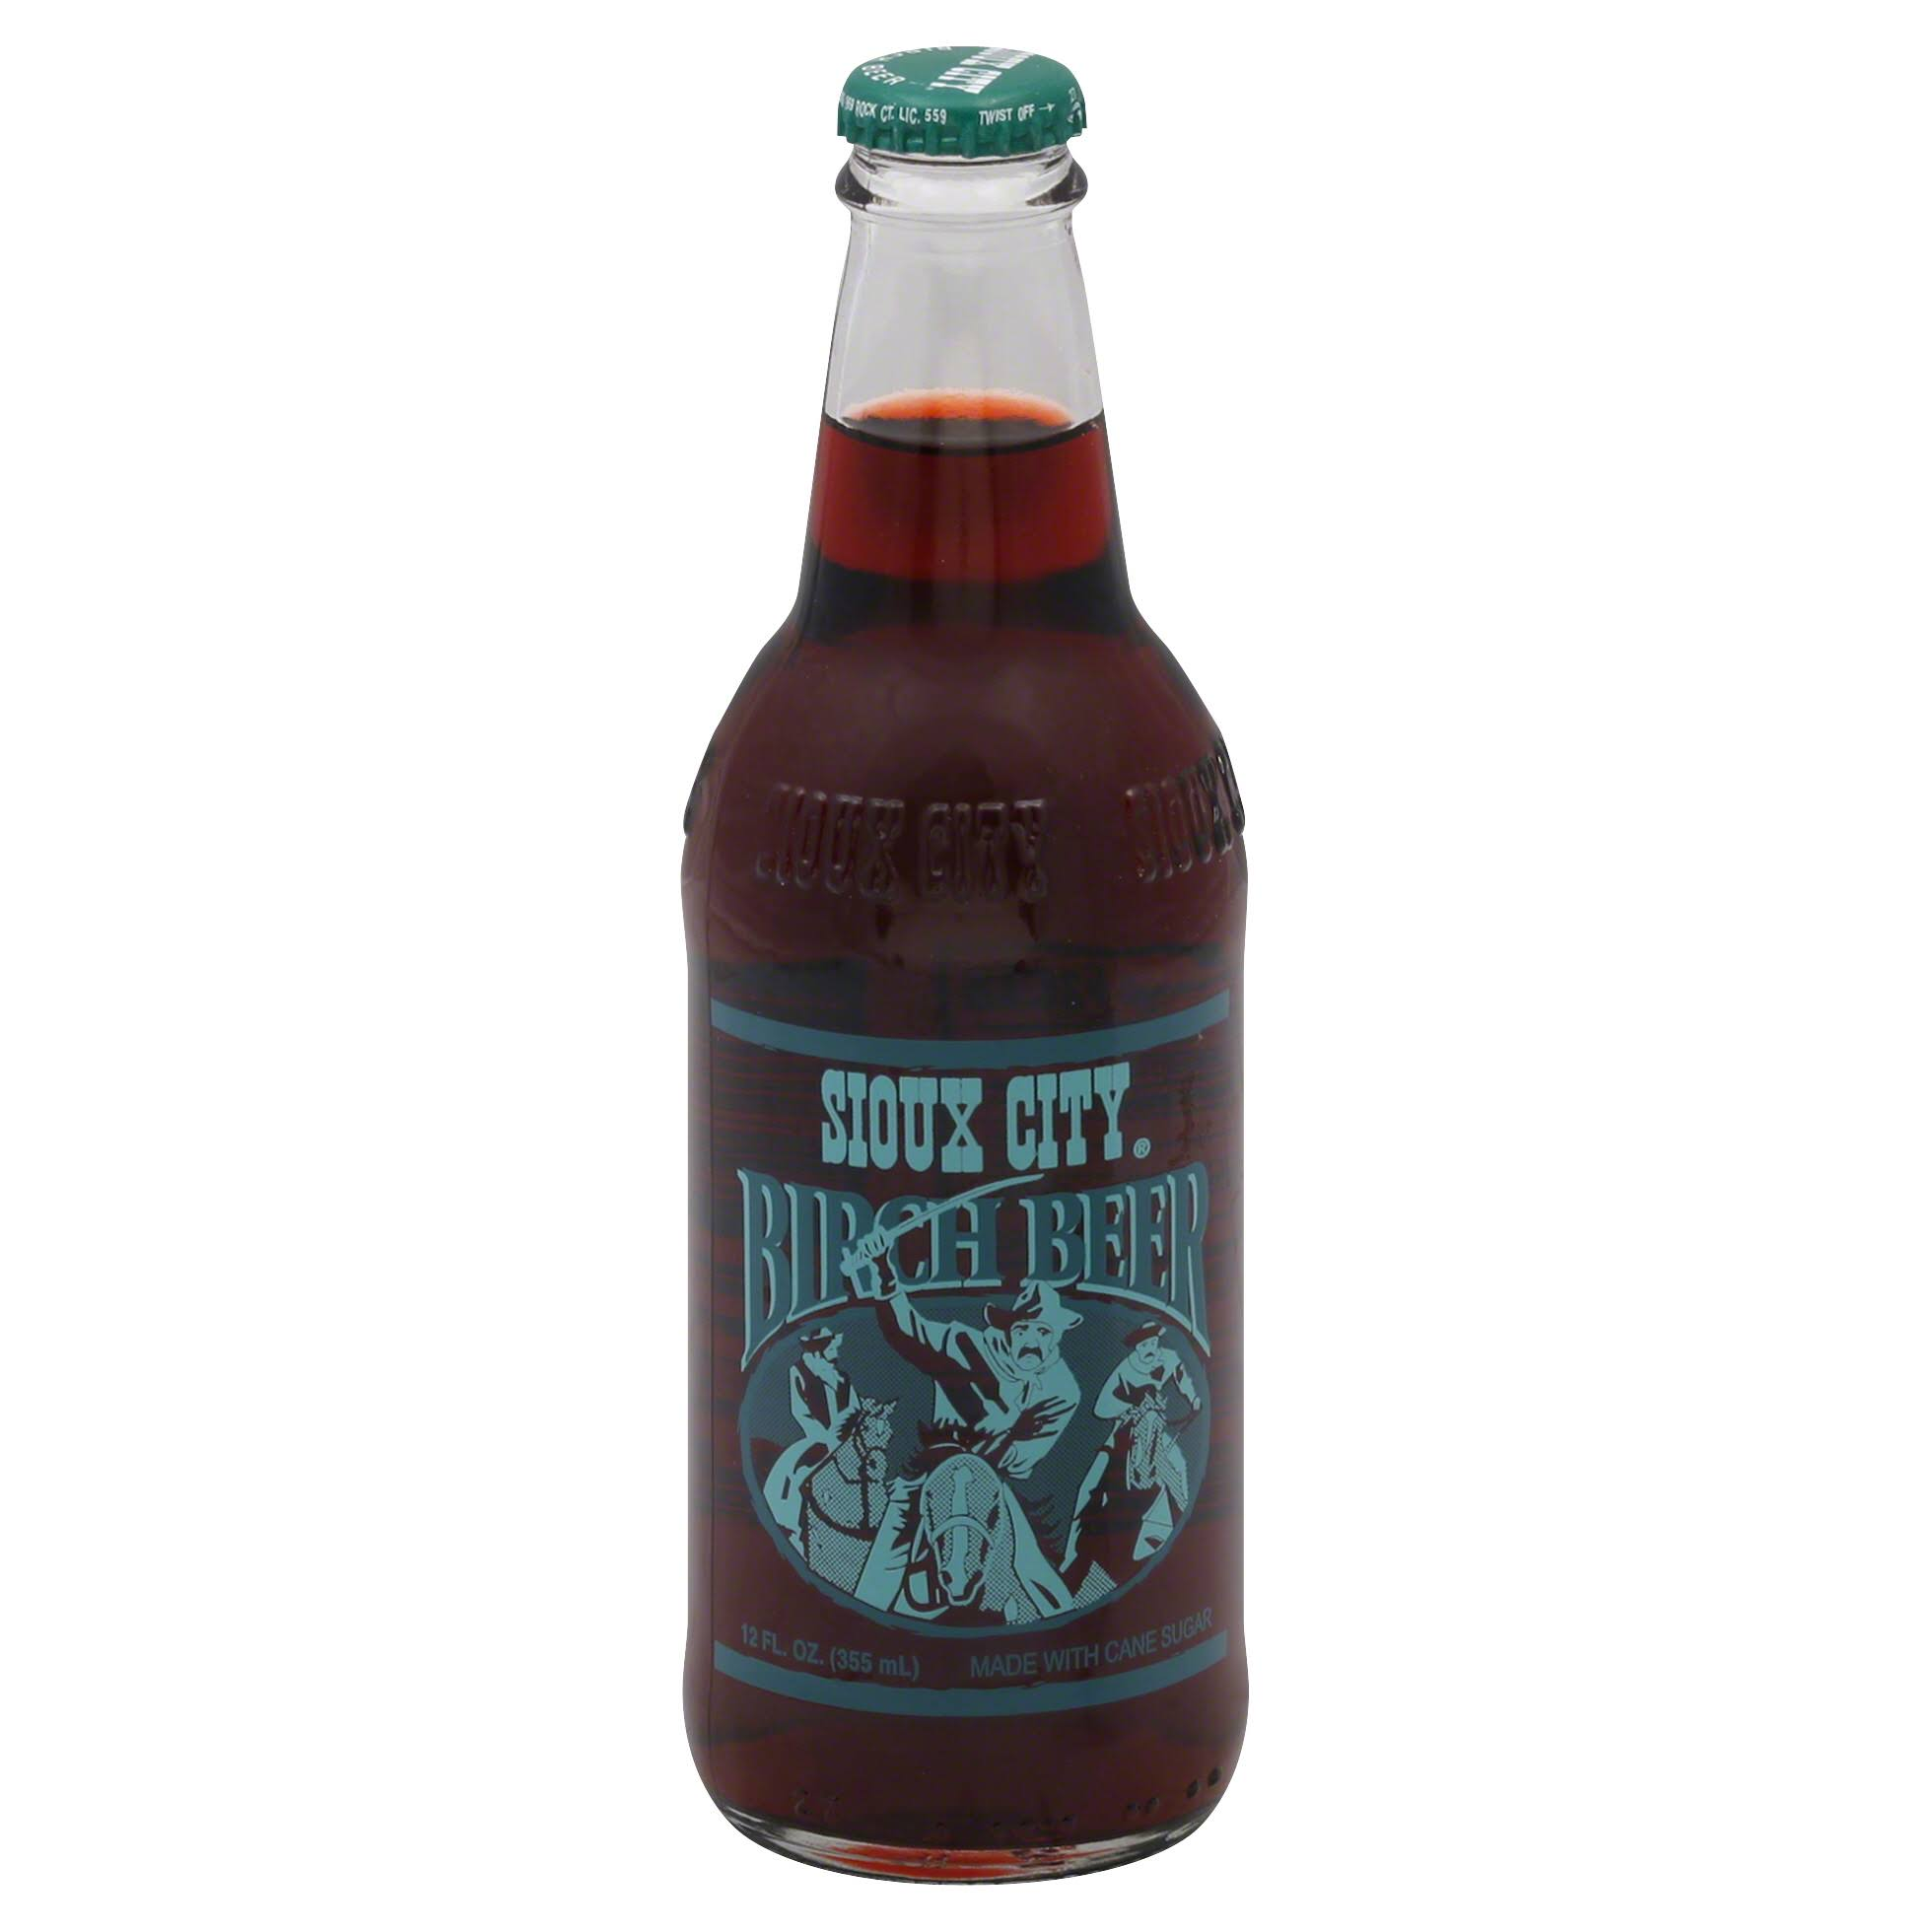 Sioux City Birch Beer - 12 fl oz